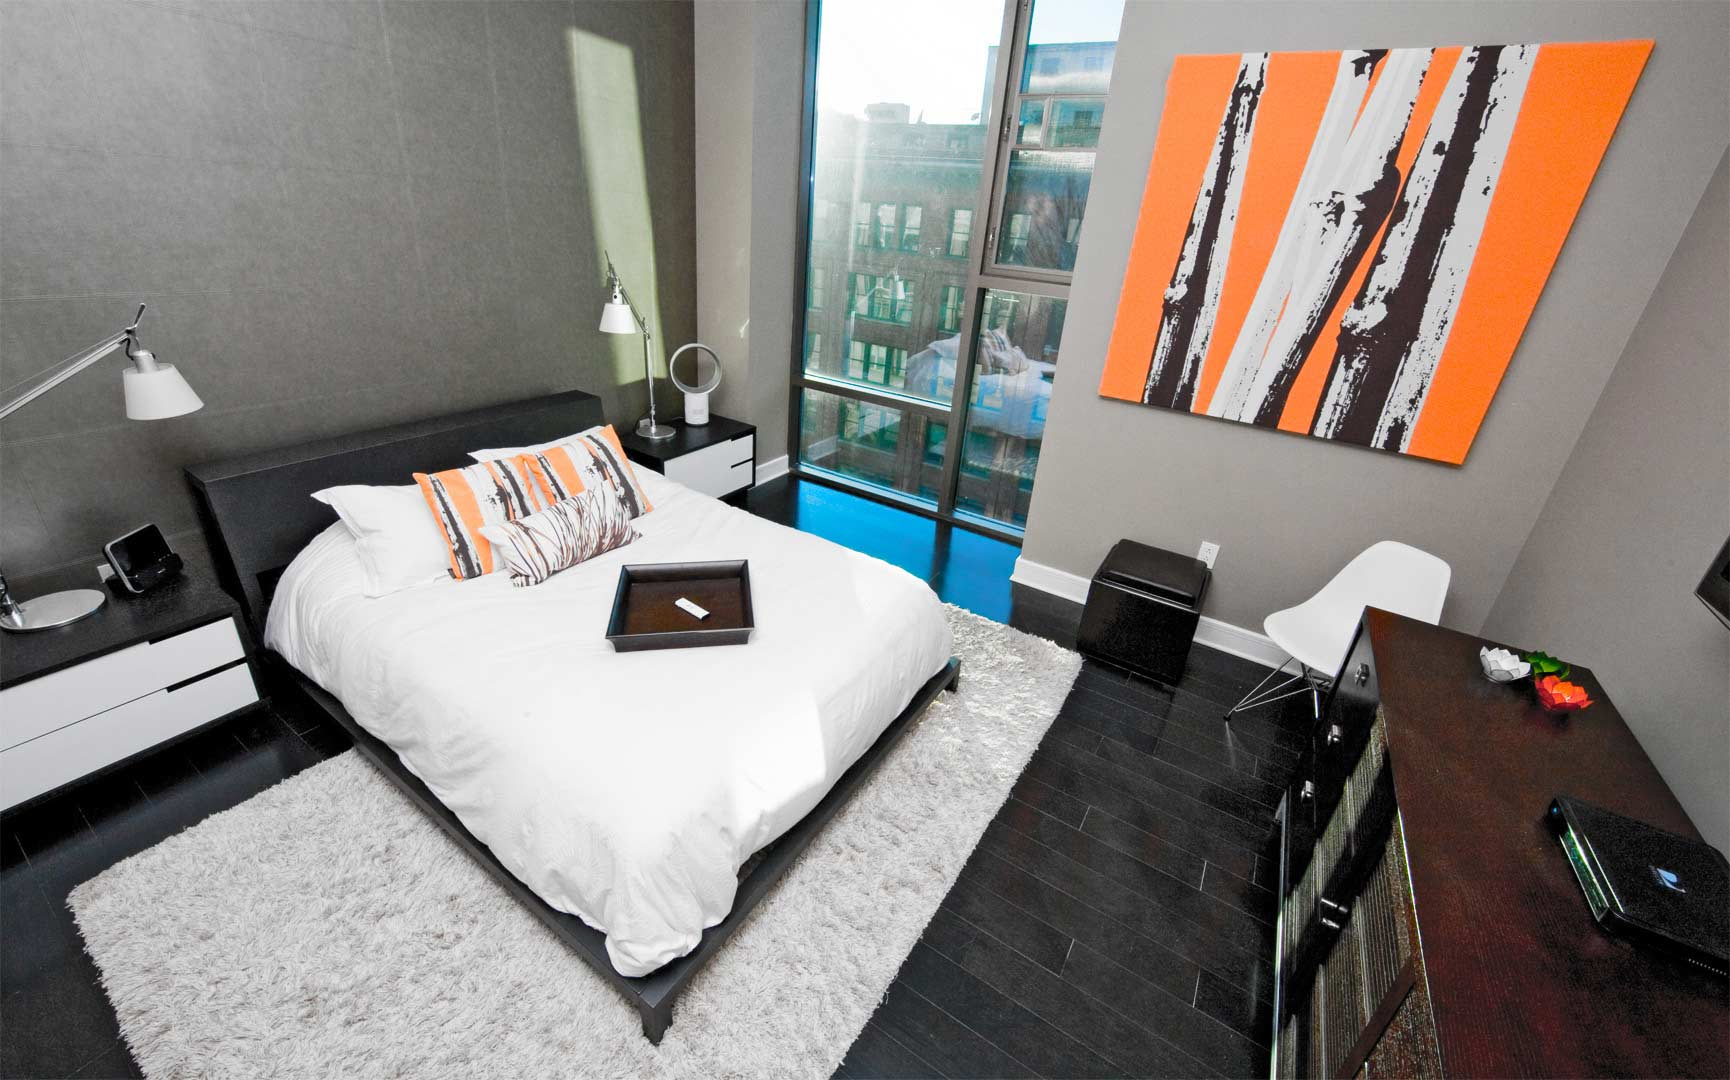 Urban Industrial Interior - Downtown Master Bedroom with Downtown Skyline Views - HAUS Architecture, WERK Building Modern